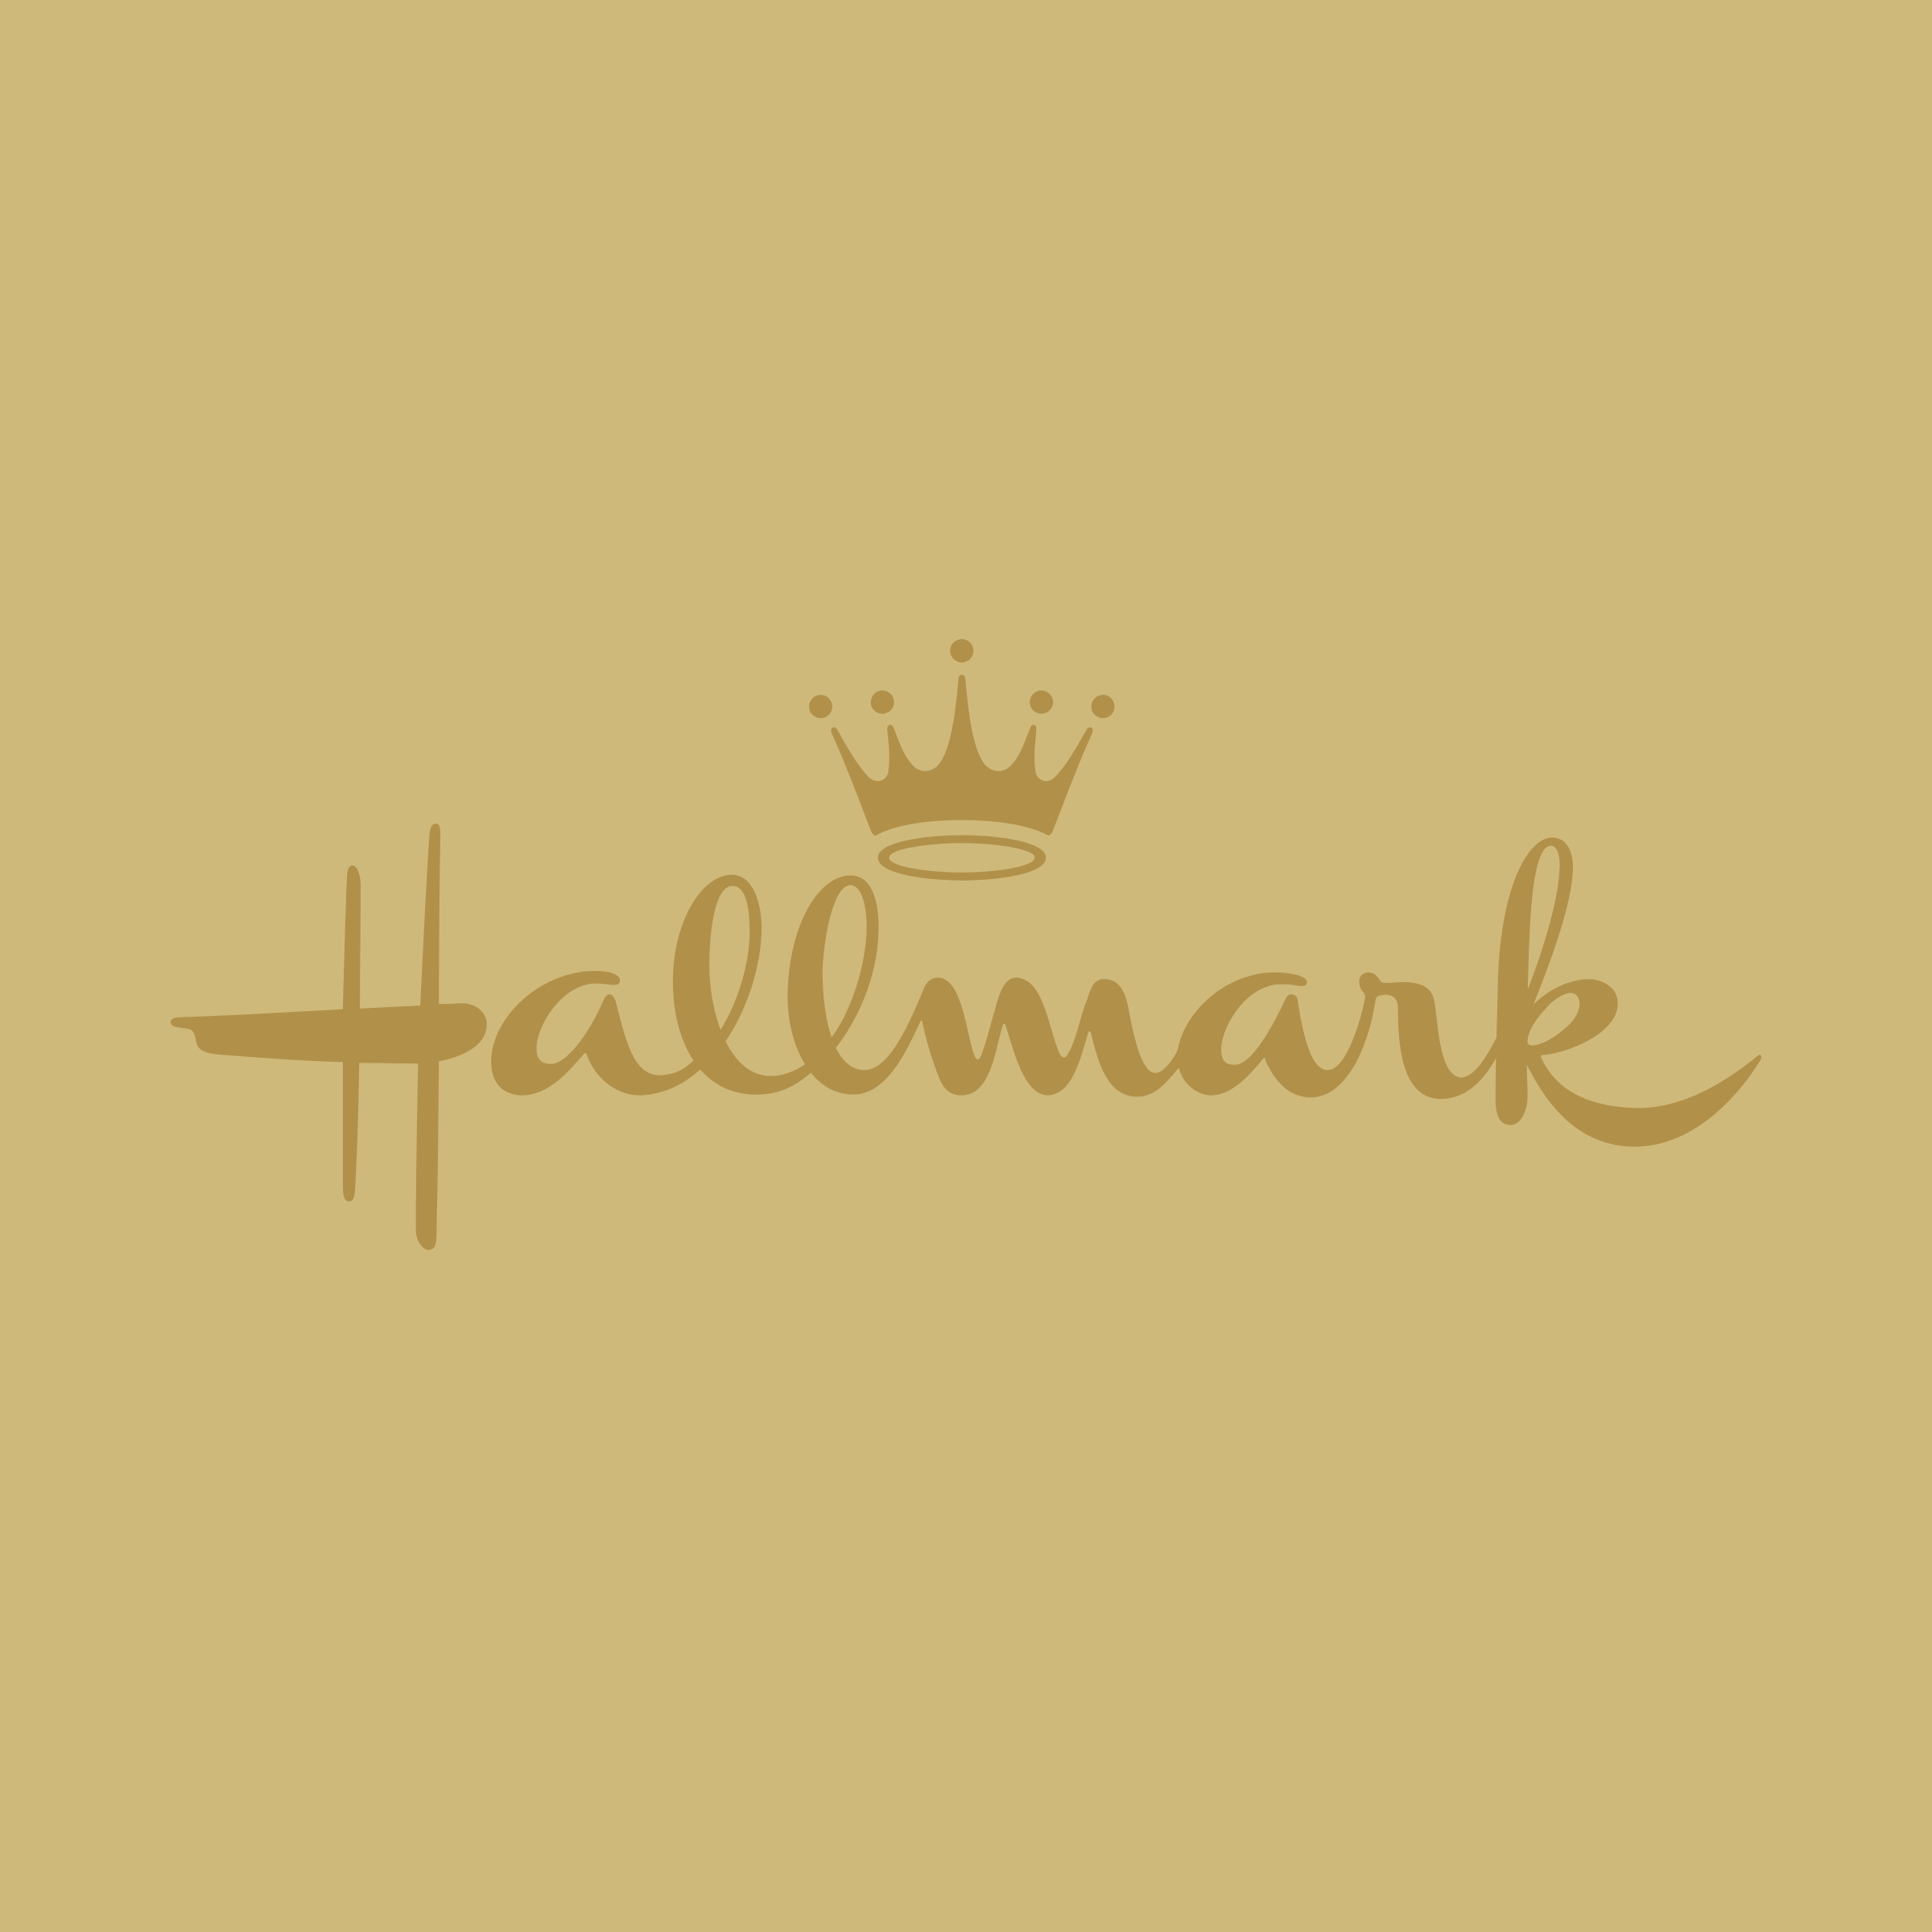 Hallmark Logo PNG Transparent & SVG Vector.